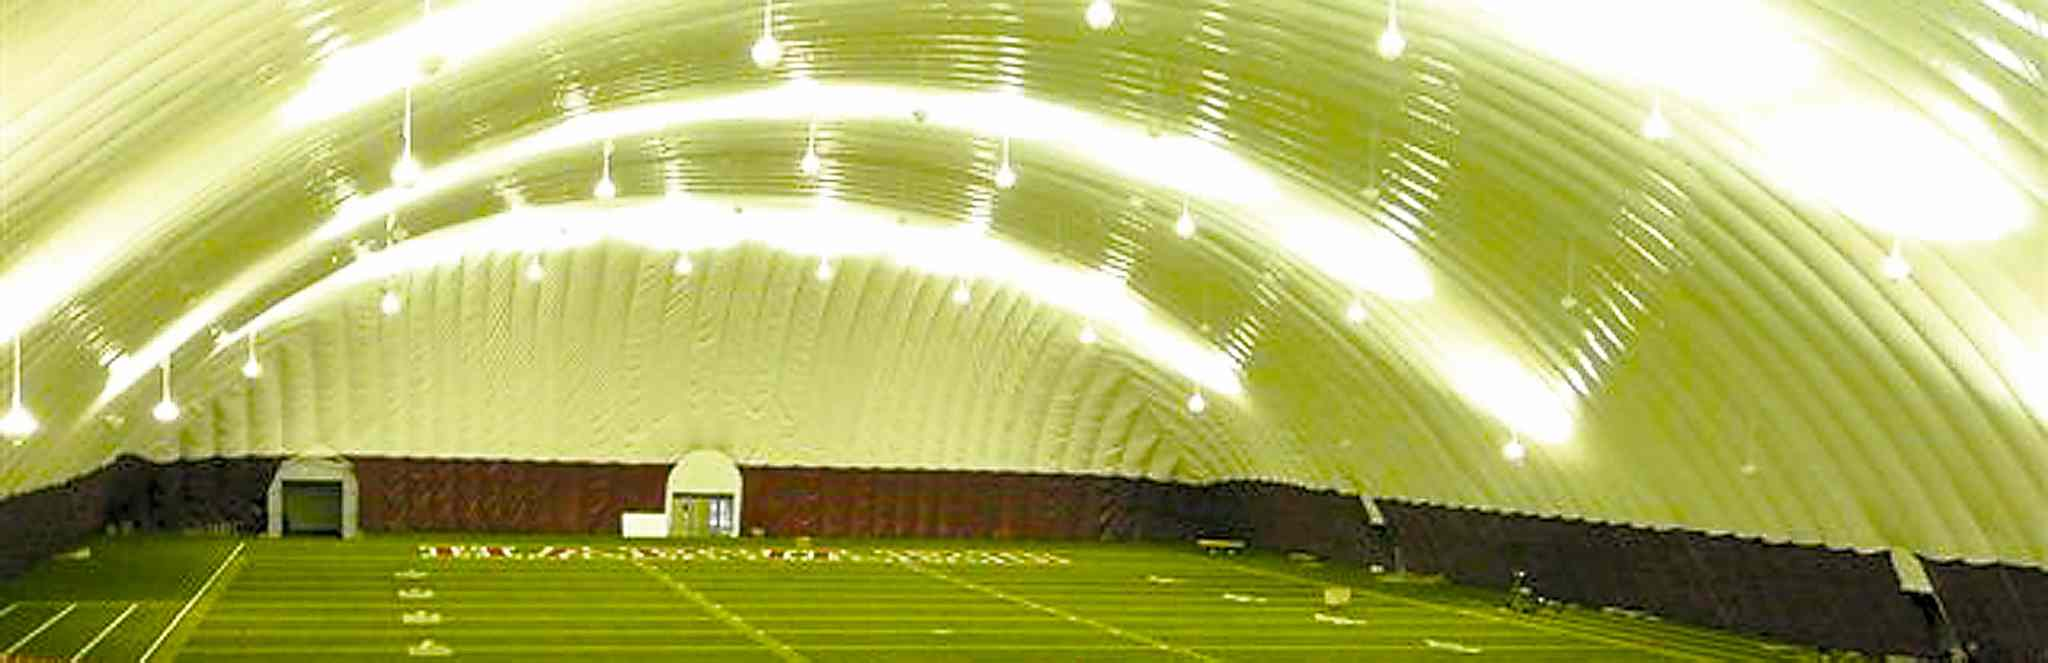 Artist's depiction of an inflatable bubble over a stadium field. Investors Group Field will not be getting one.